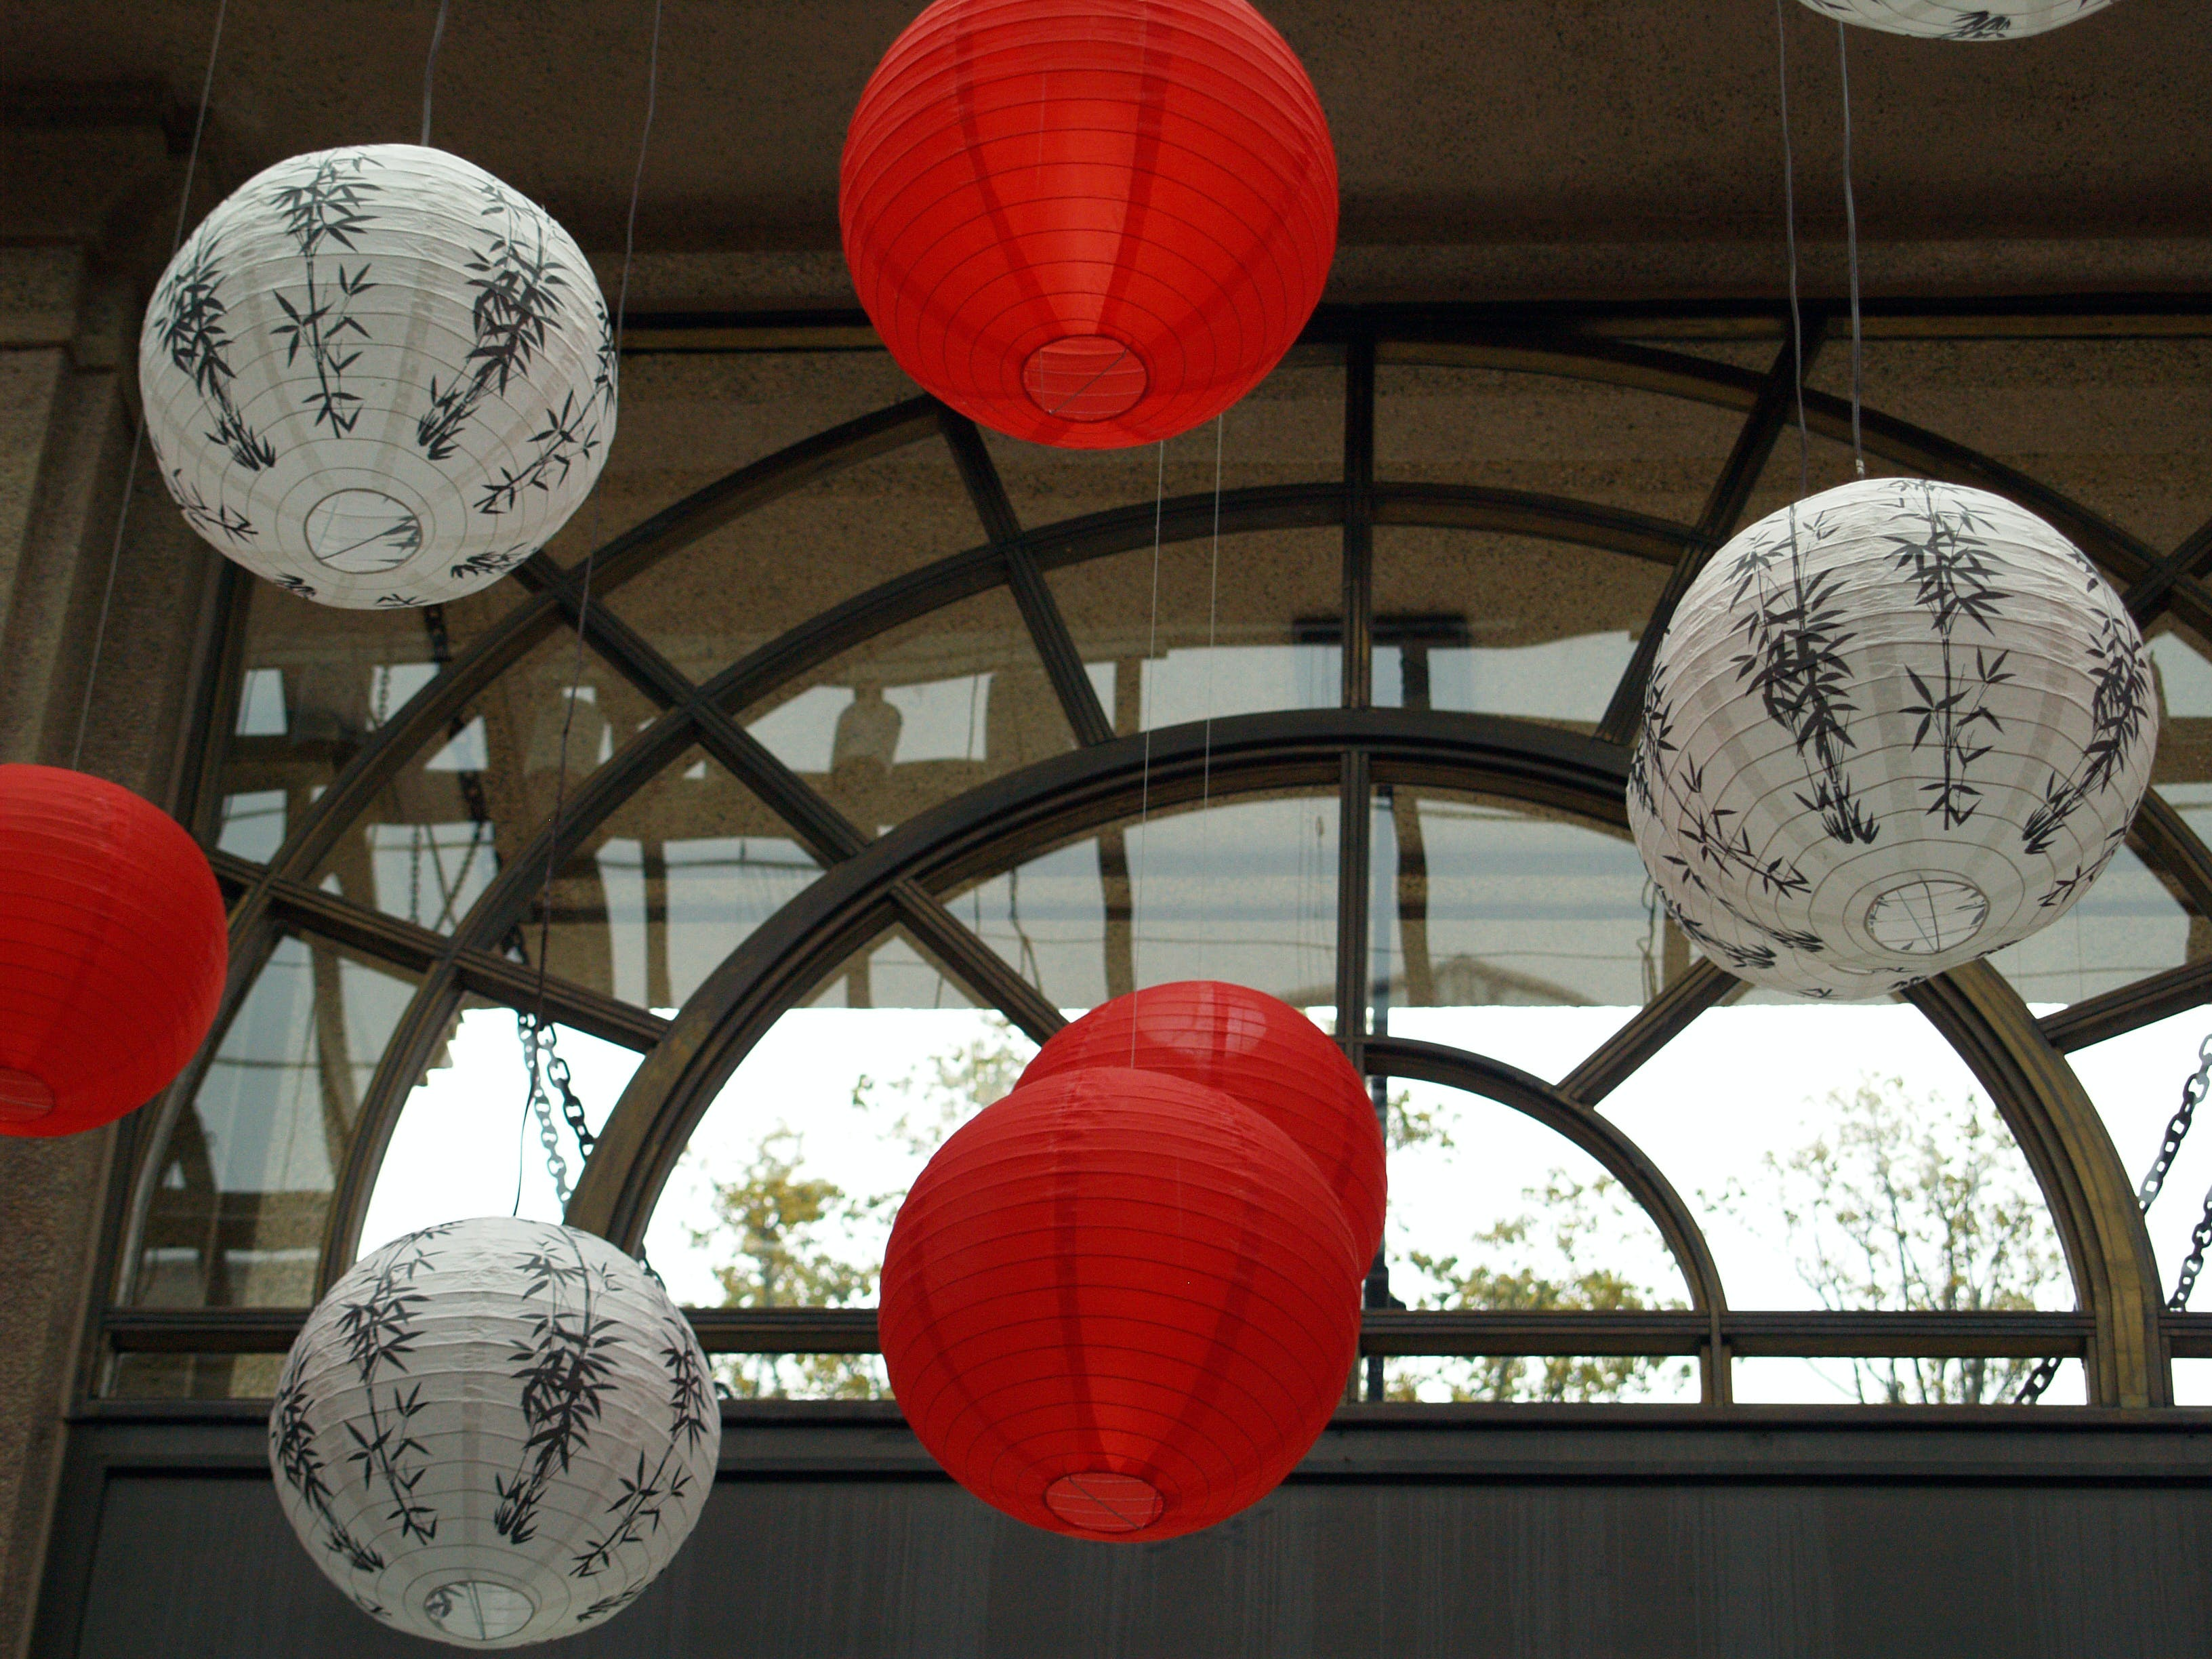 Free stock photo of paper lanterns, red